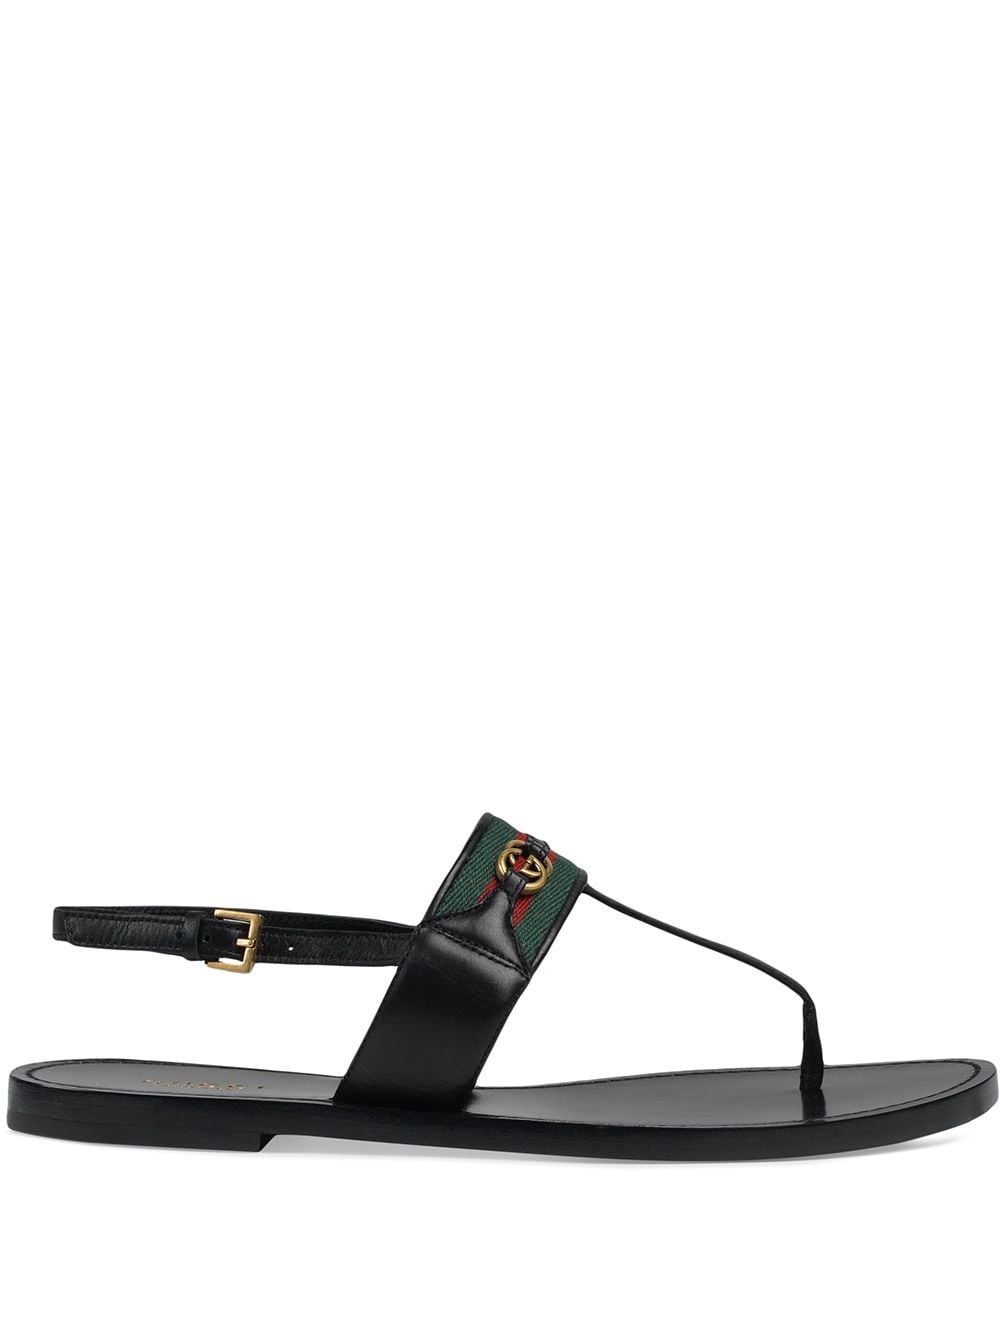 Web Stripe T-bar Flat Sandals - Black